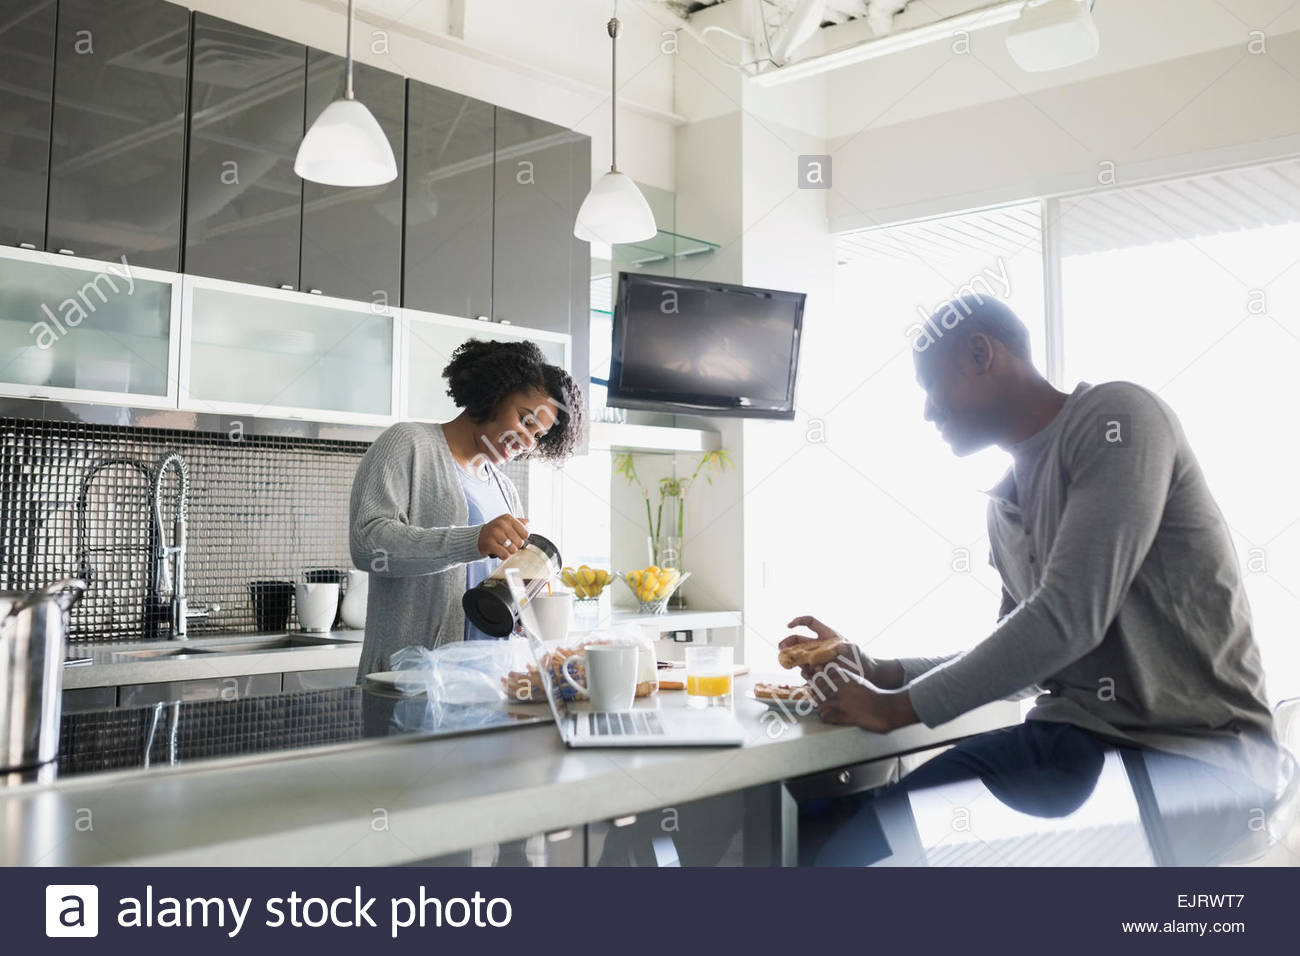 French Bar Stock Photos & French Bar Stock Images - Alamy